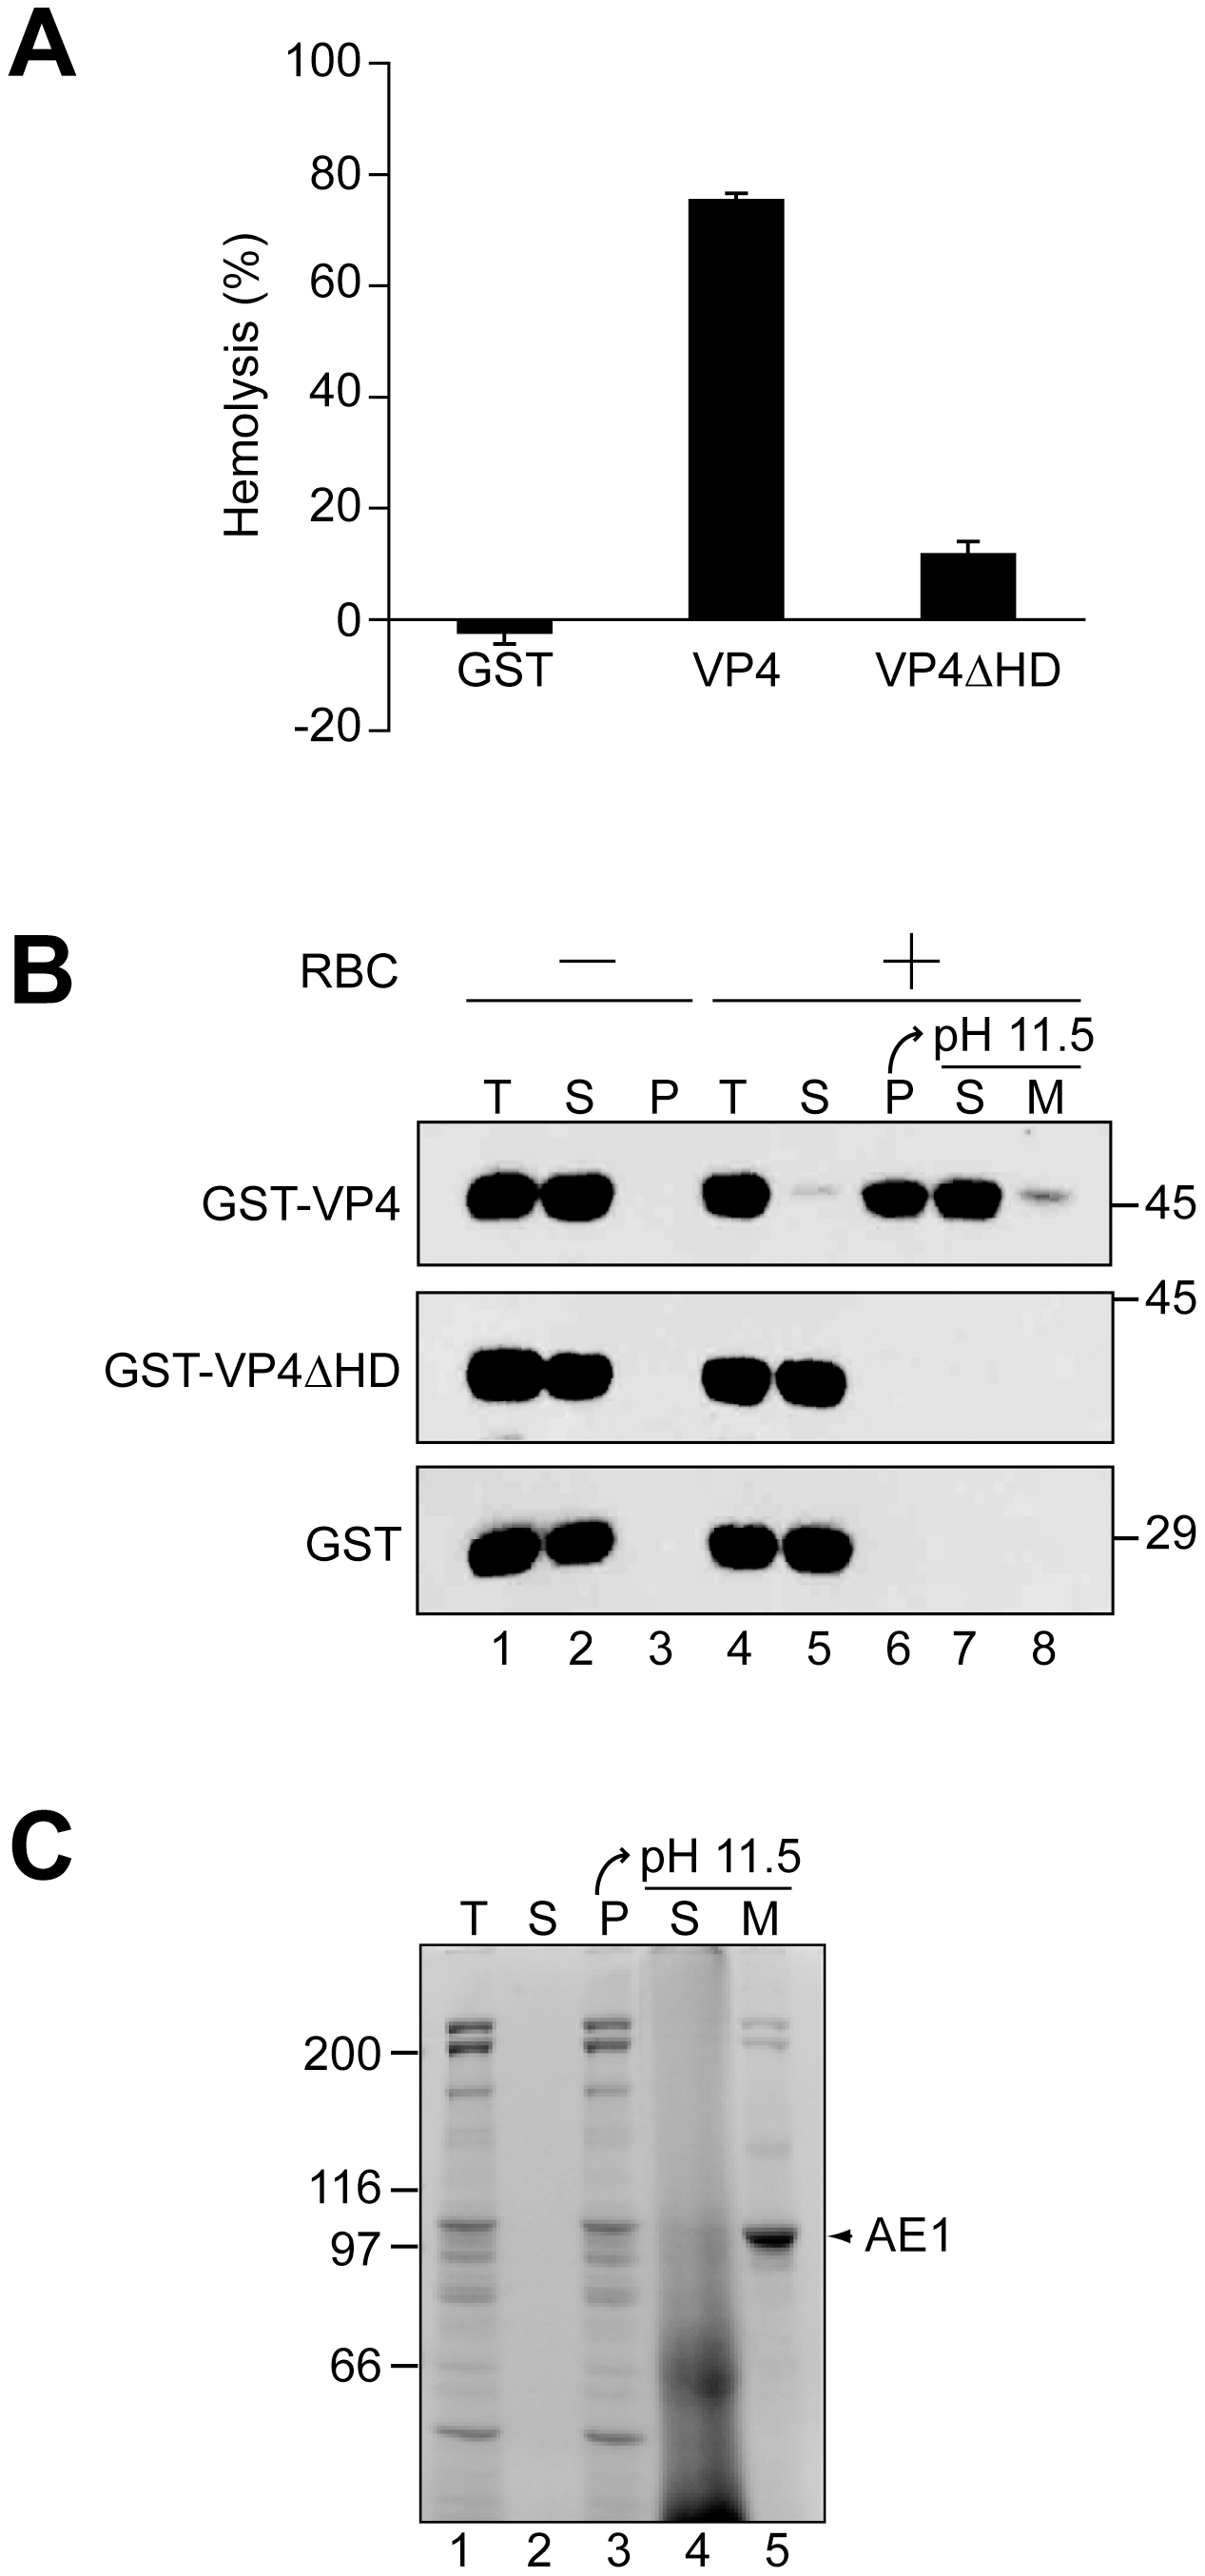 The hydrophobic domain of VP4 is required for its binding and disruption of RBC membranes.